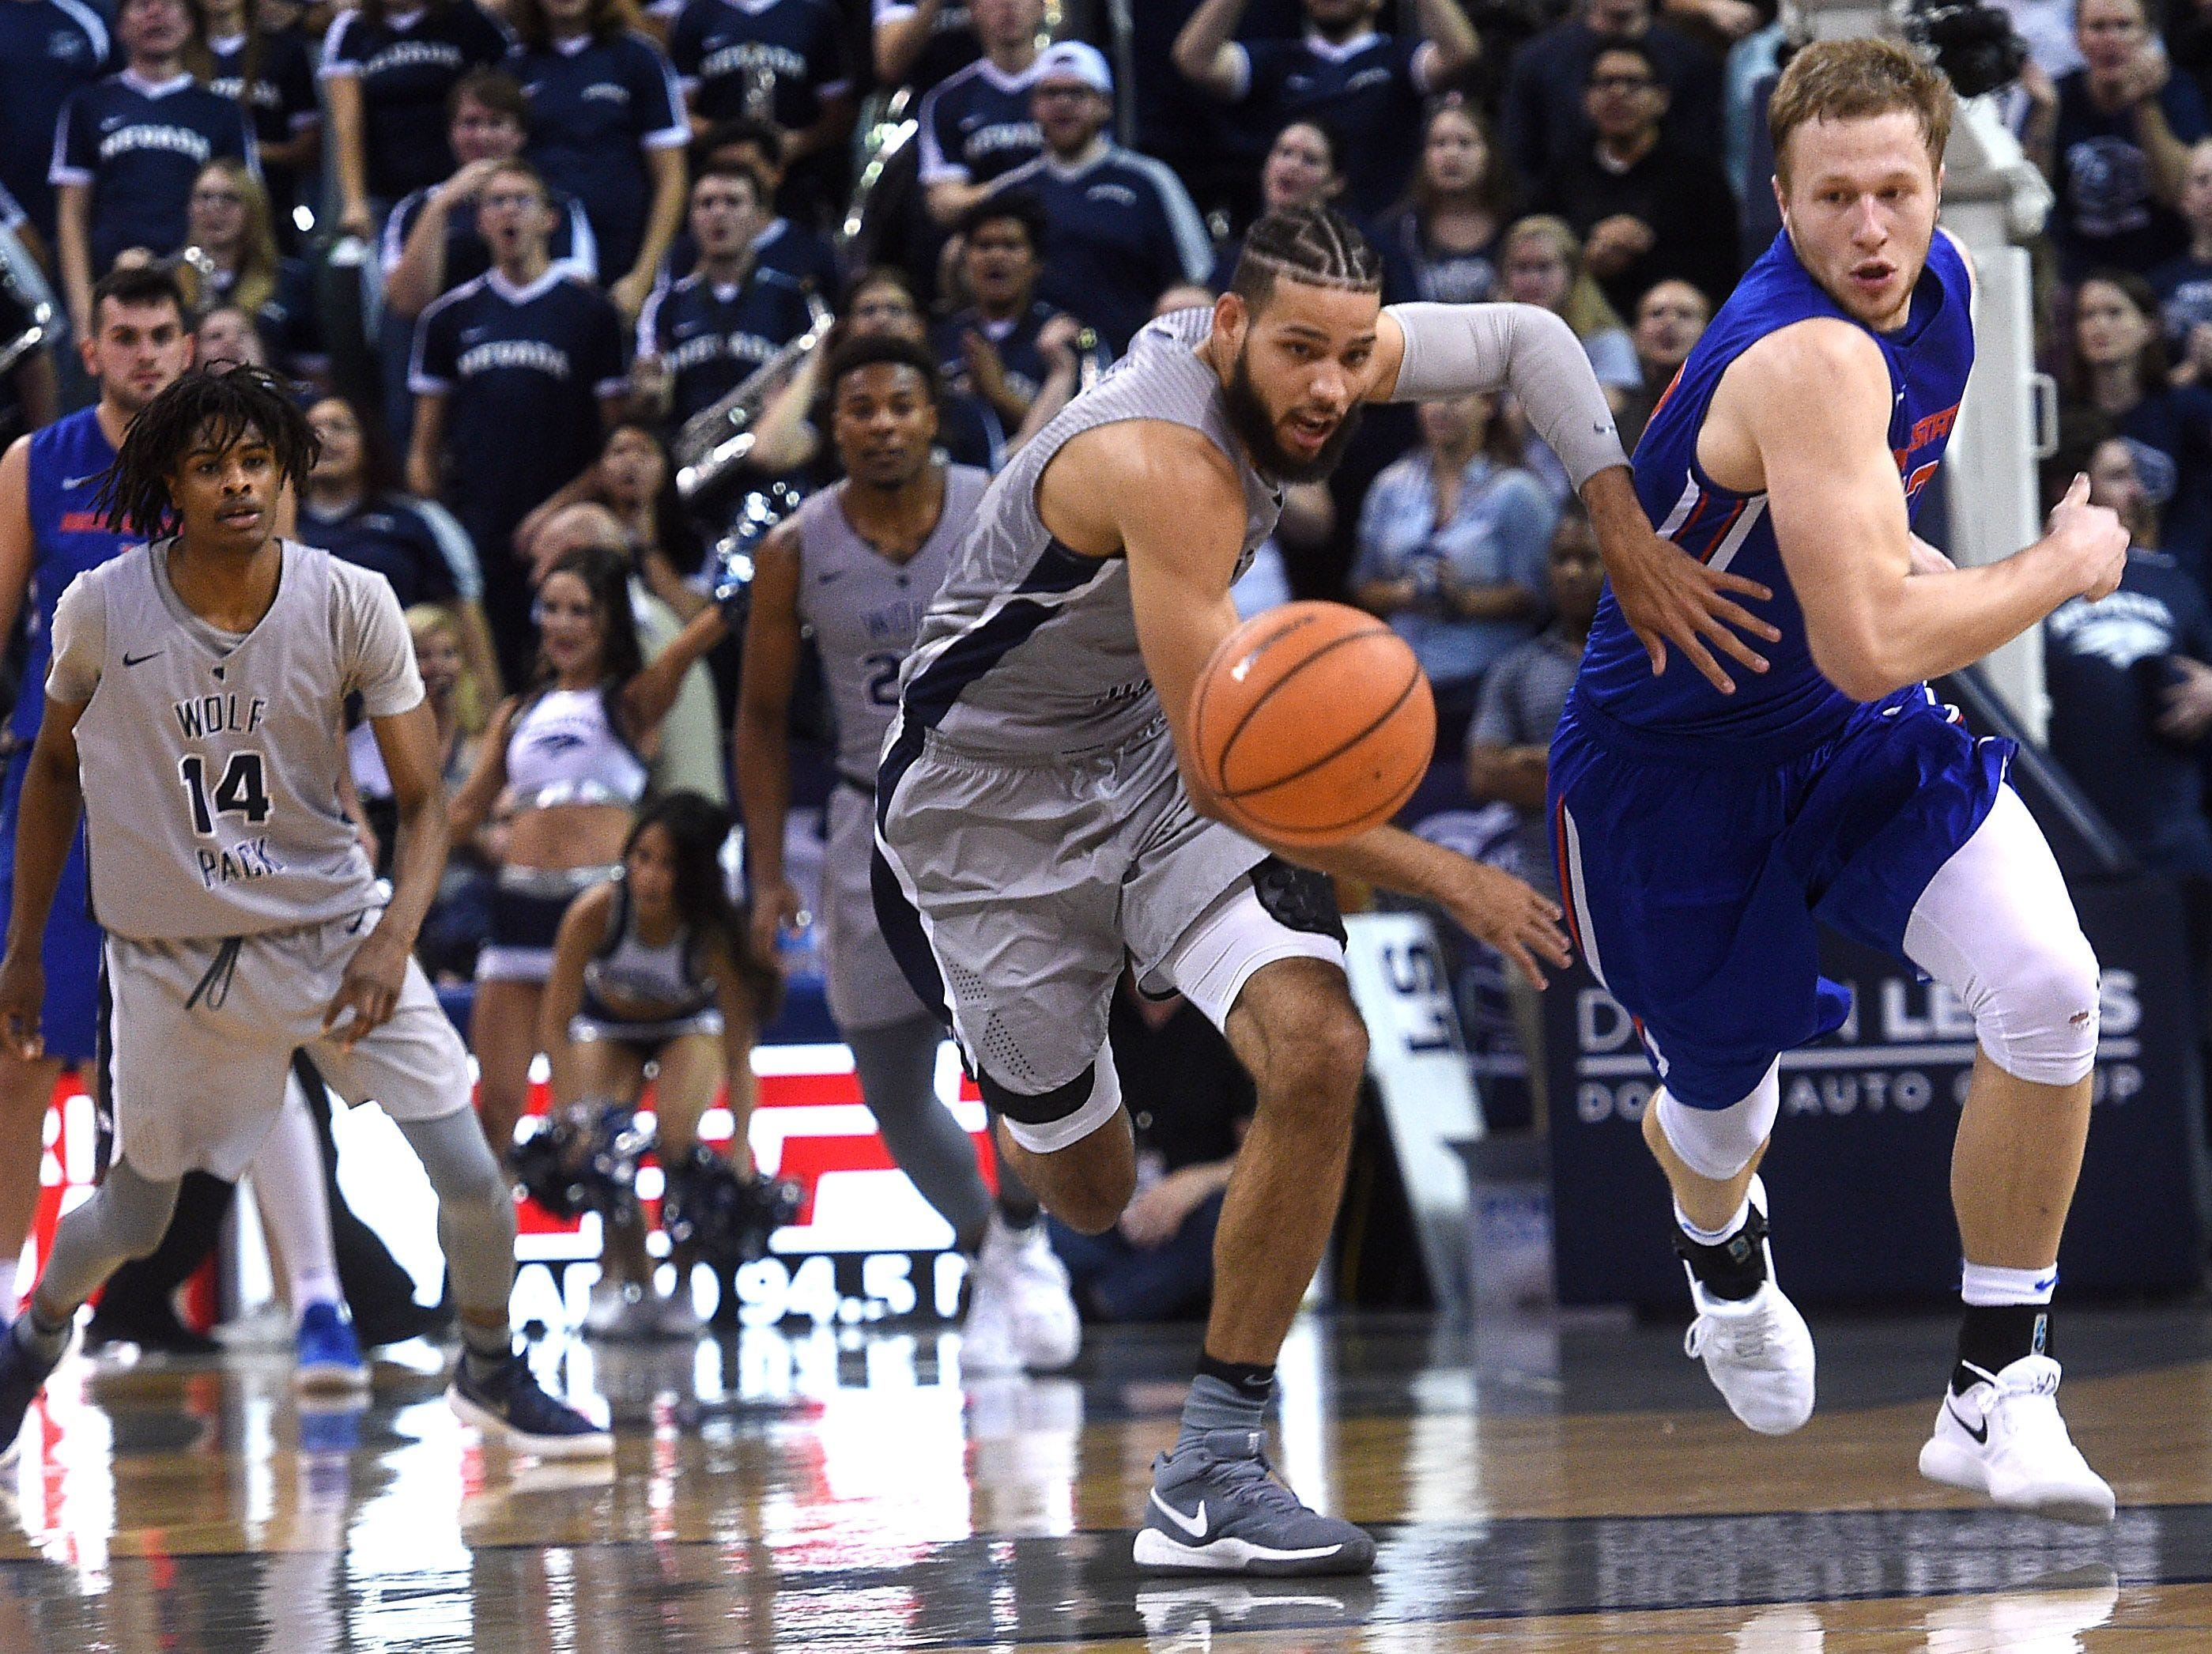 Nevada's Cody Martin (11) fights for a loose ball while taking on Boise State during their basketball game at Lawlor Events Center in Reno on Jan. 20, 2018.